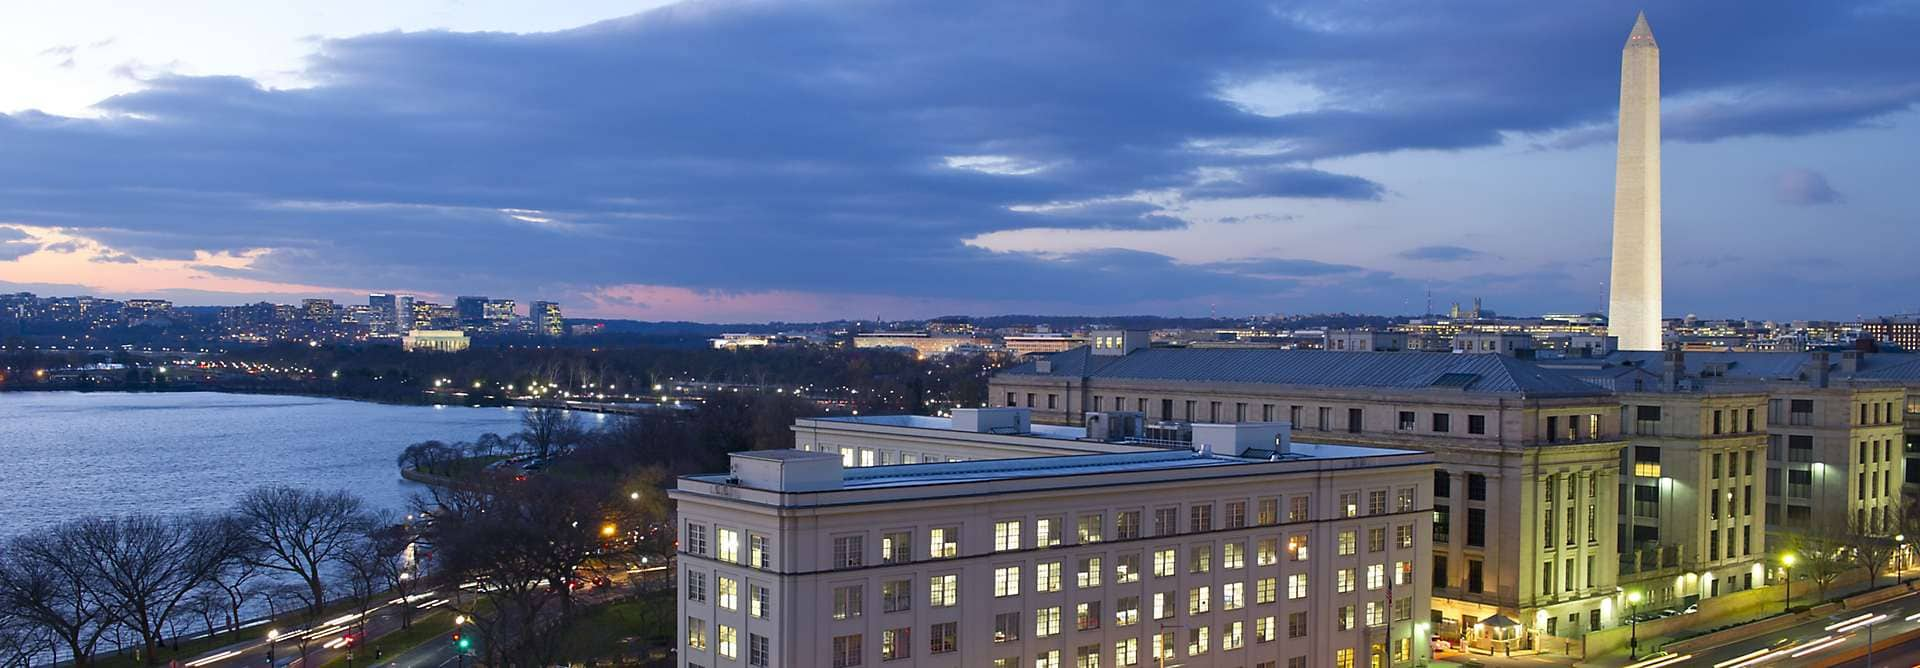 Panoramic view of the Mandarin Oriental, Washington DC and Washington Monument lit up at night.